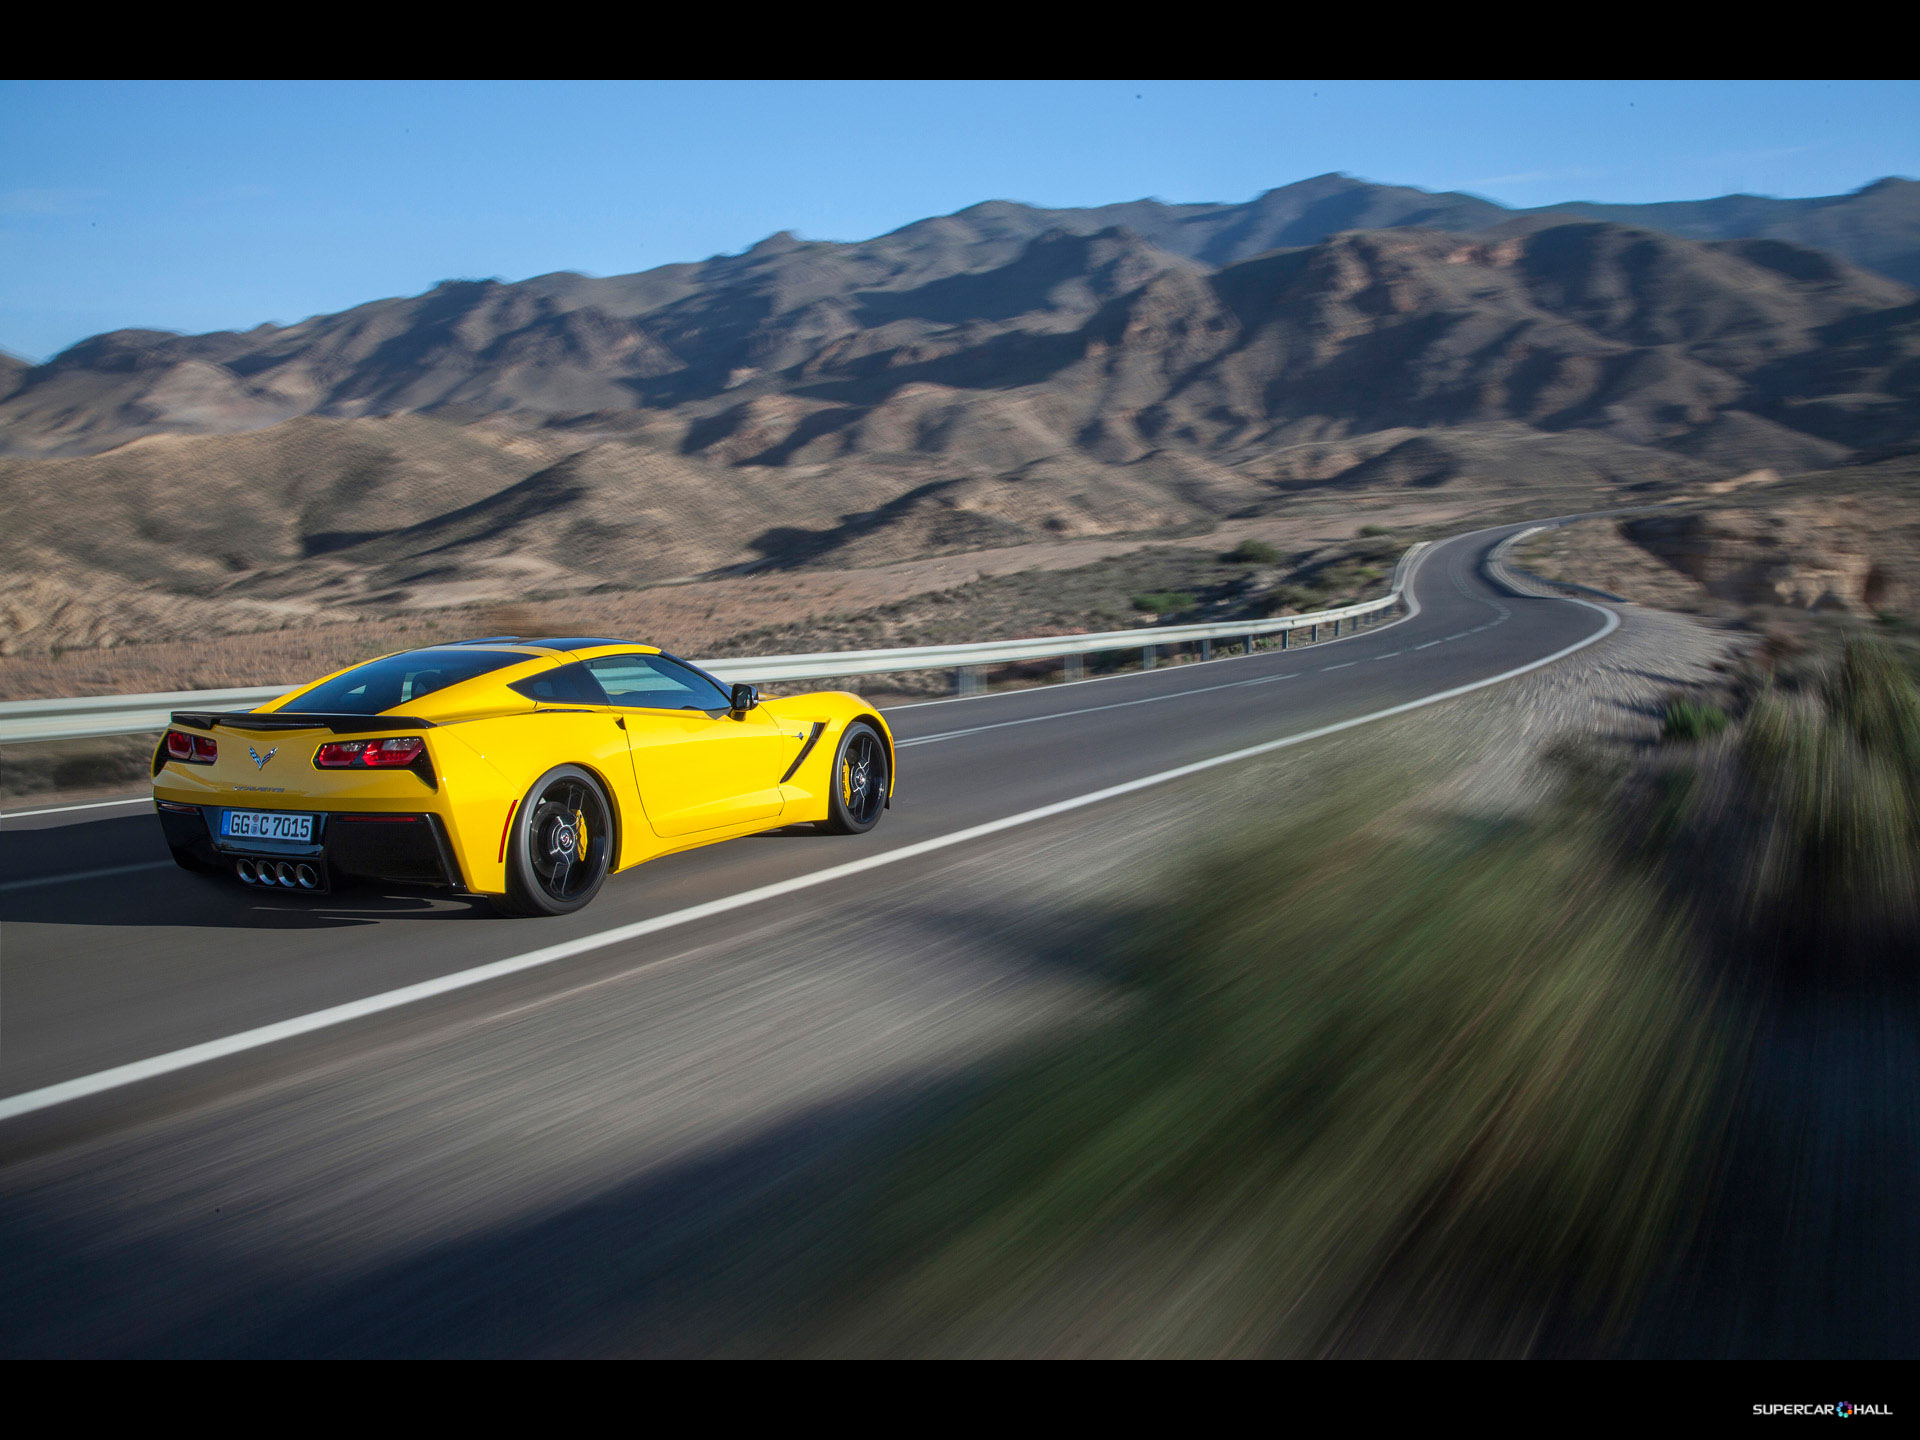 2014 Chevrolet Corvette Stingray EU Version photo - 1